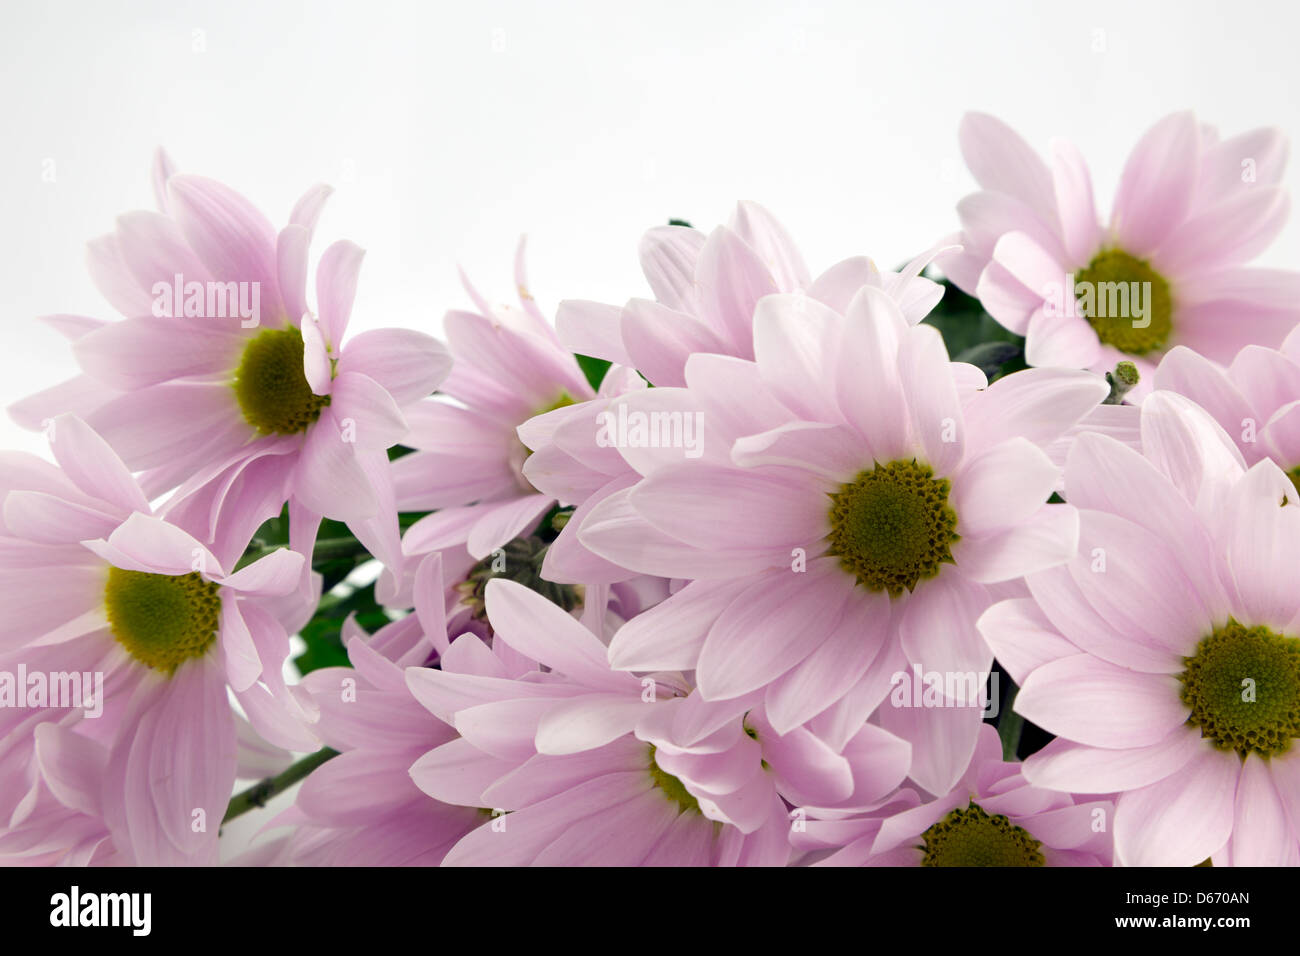 Pale pink chrysanthemums. - Stock Image